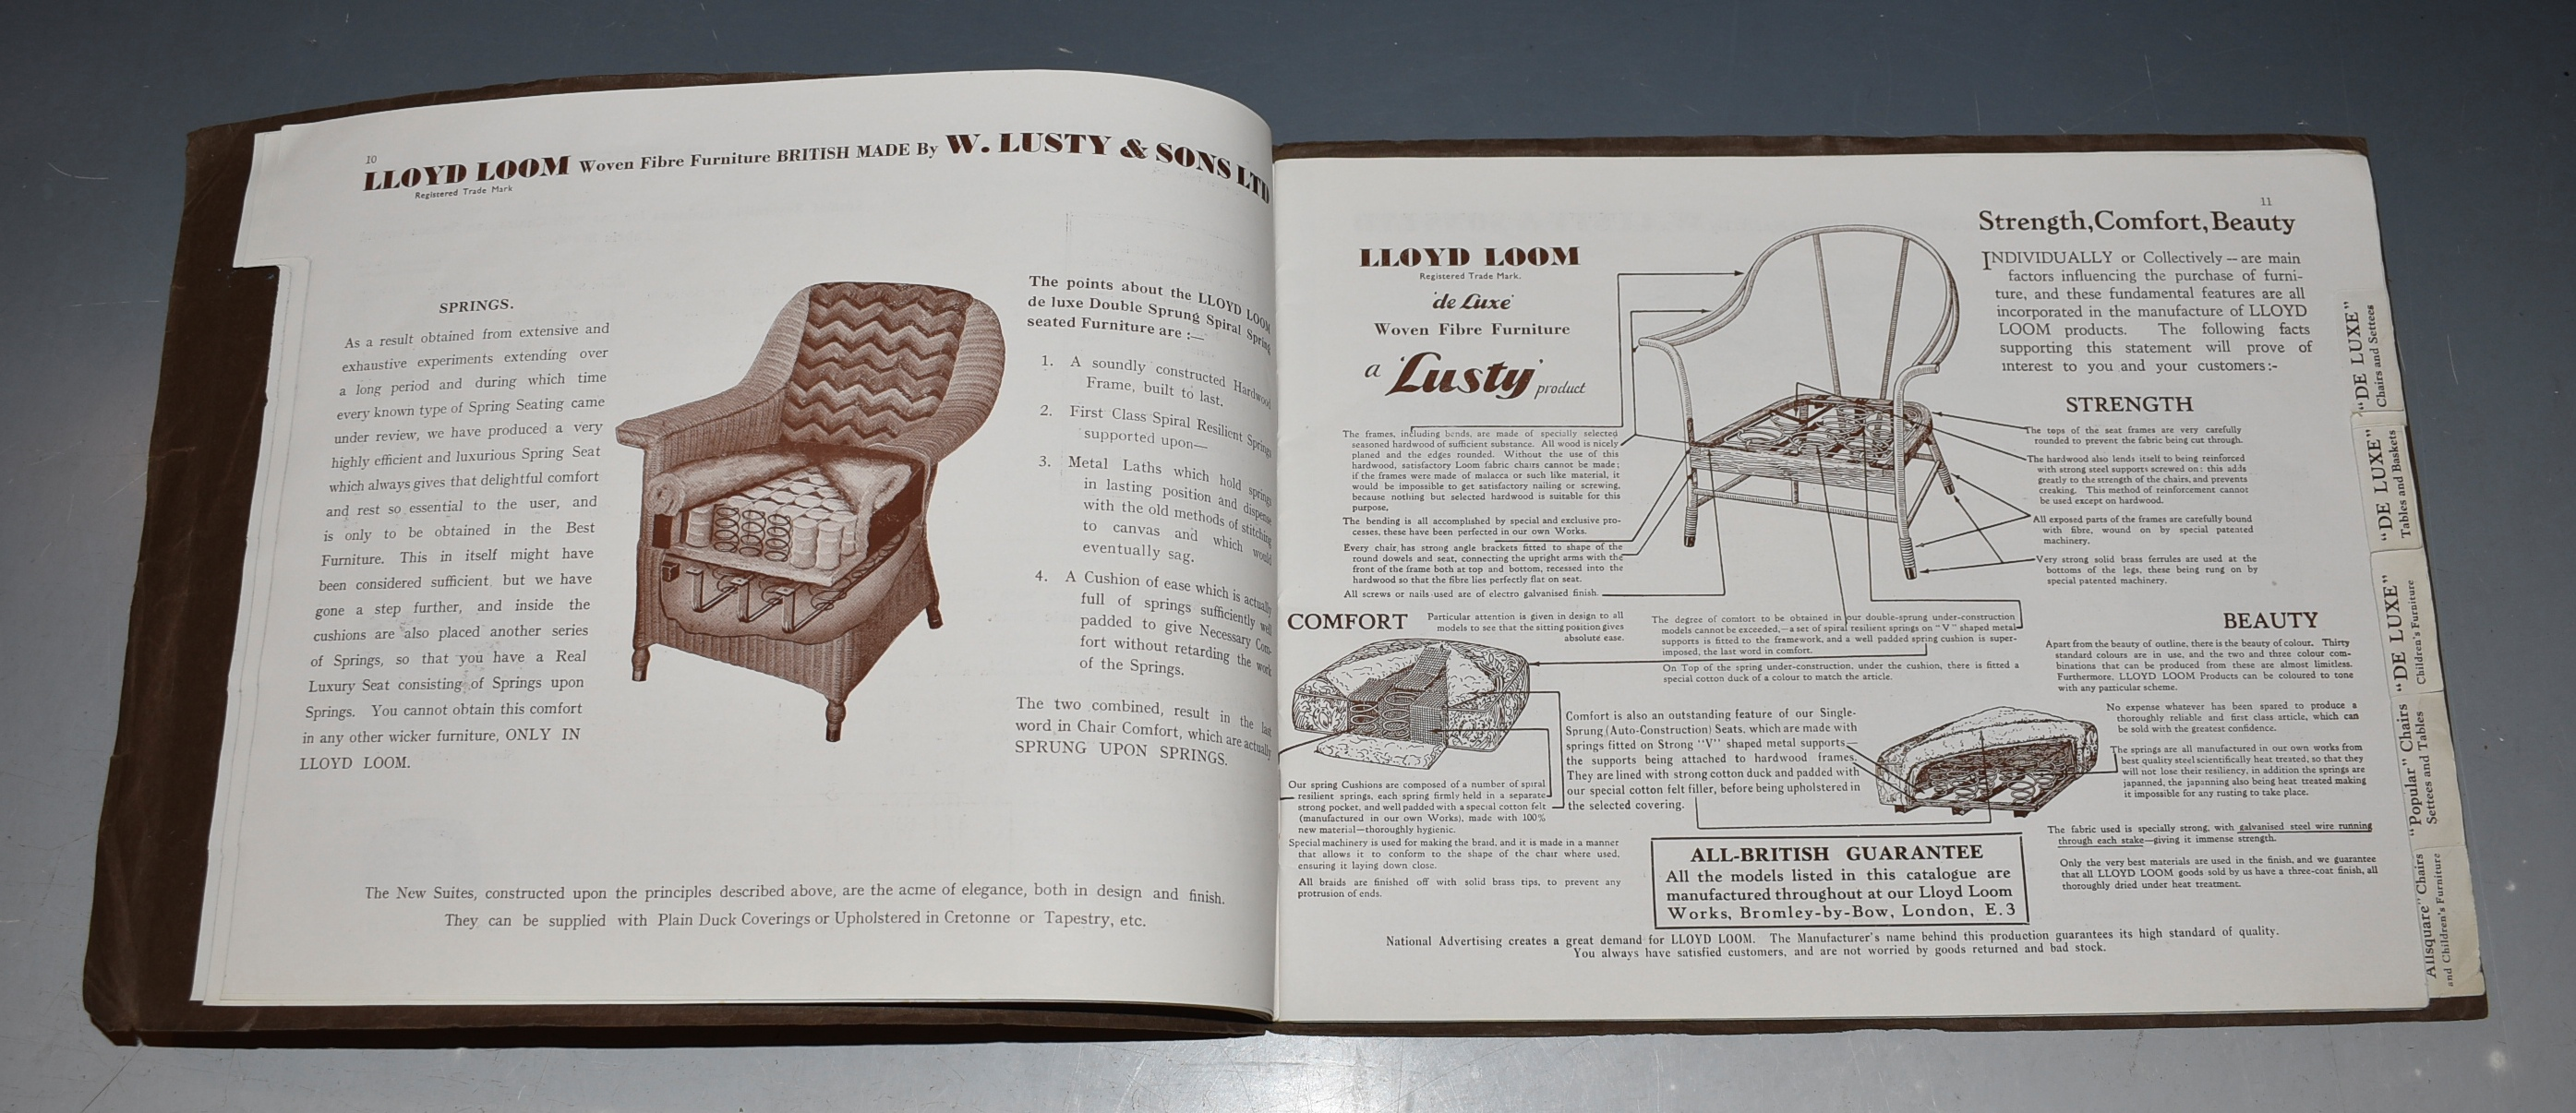 Image for Catalogue of Lloyd Loom Woven Fibre Furniture